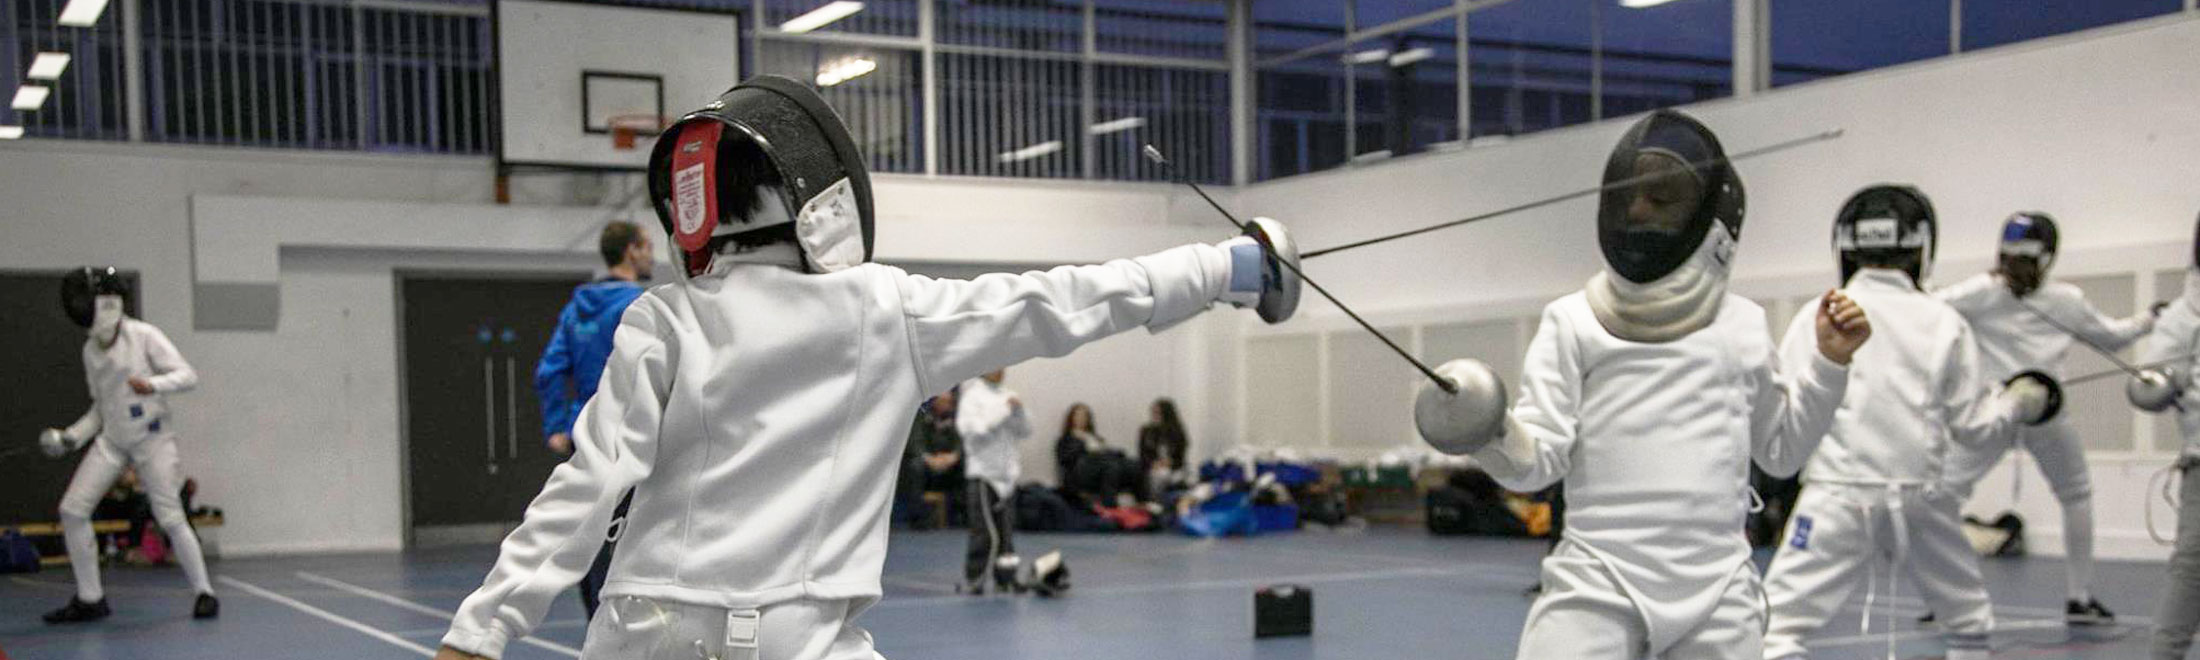 dream fencing summer epee camp.